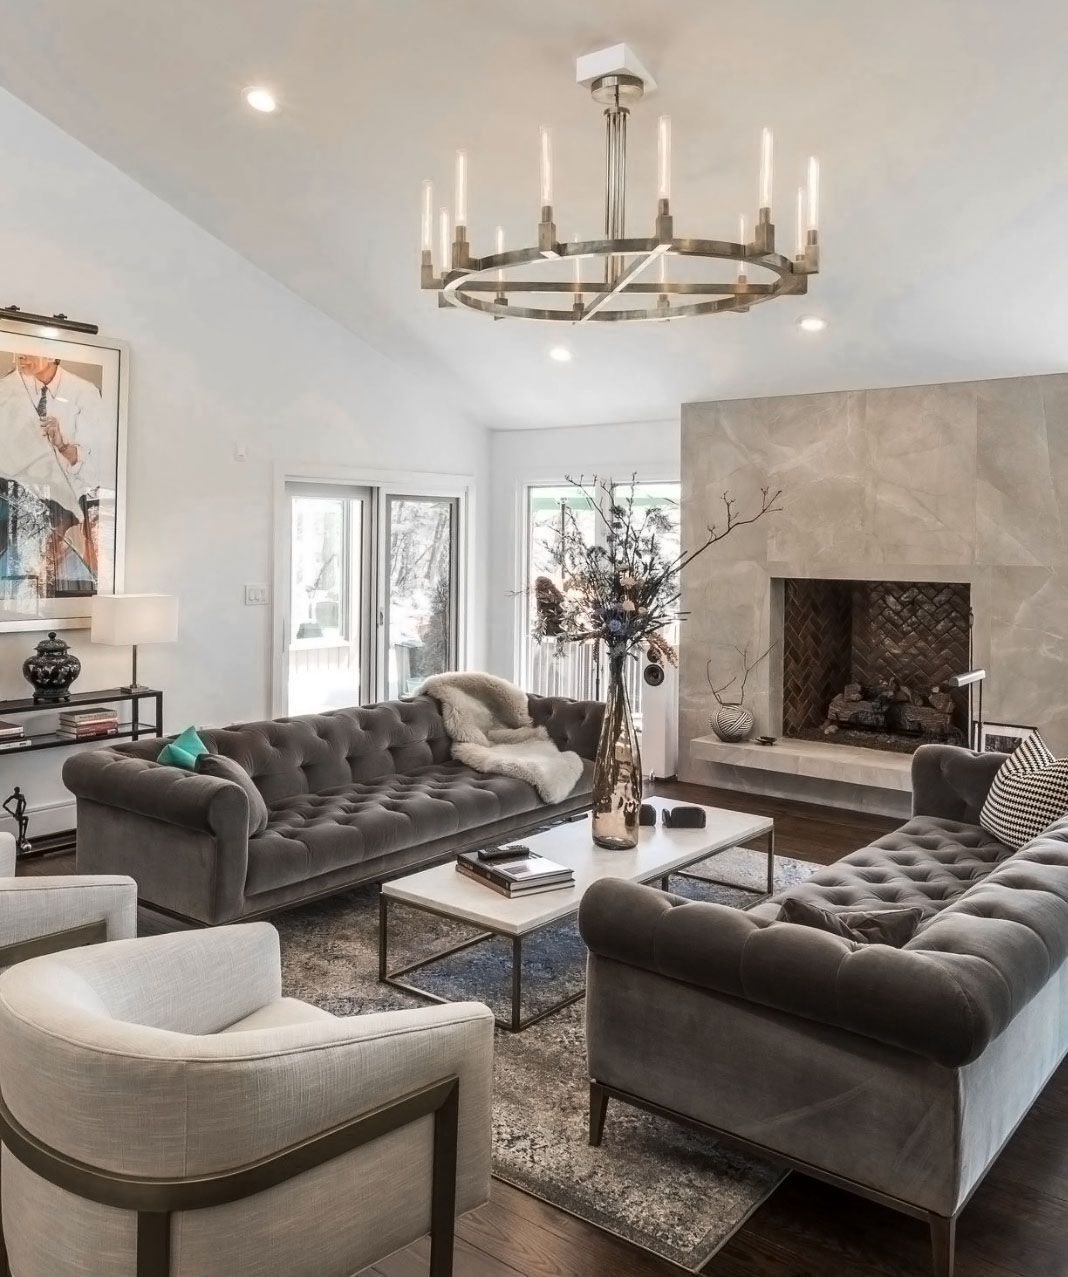 Restoration Hardware Style Inspired Gray Living Room Decor With Modern Chesterfiel In 2020 Living Room Decor Gray Velvet Sofa Living Room Chesterfield Sofa Living Room